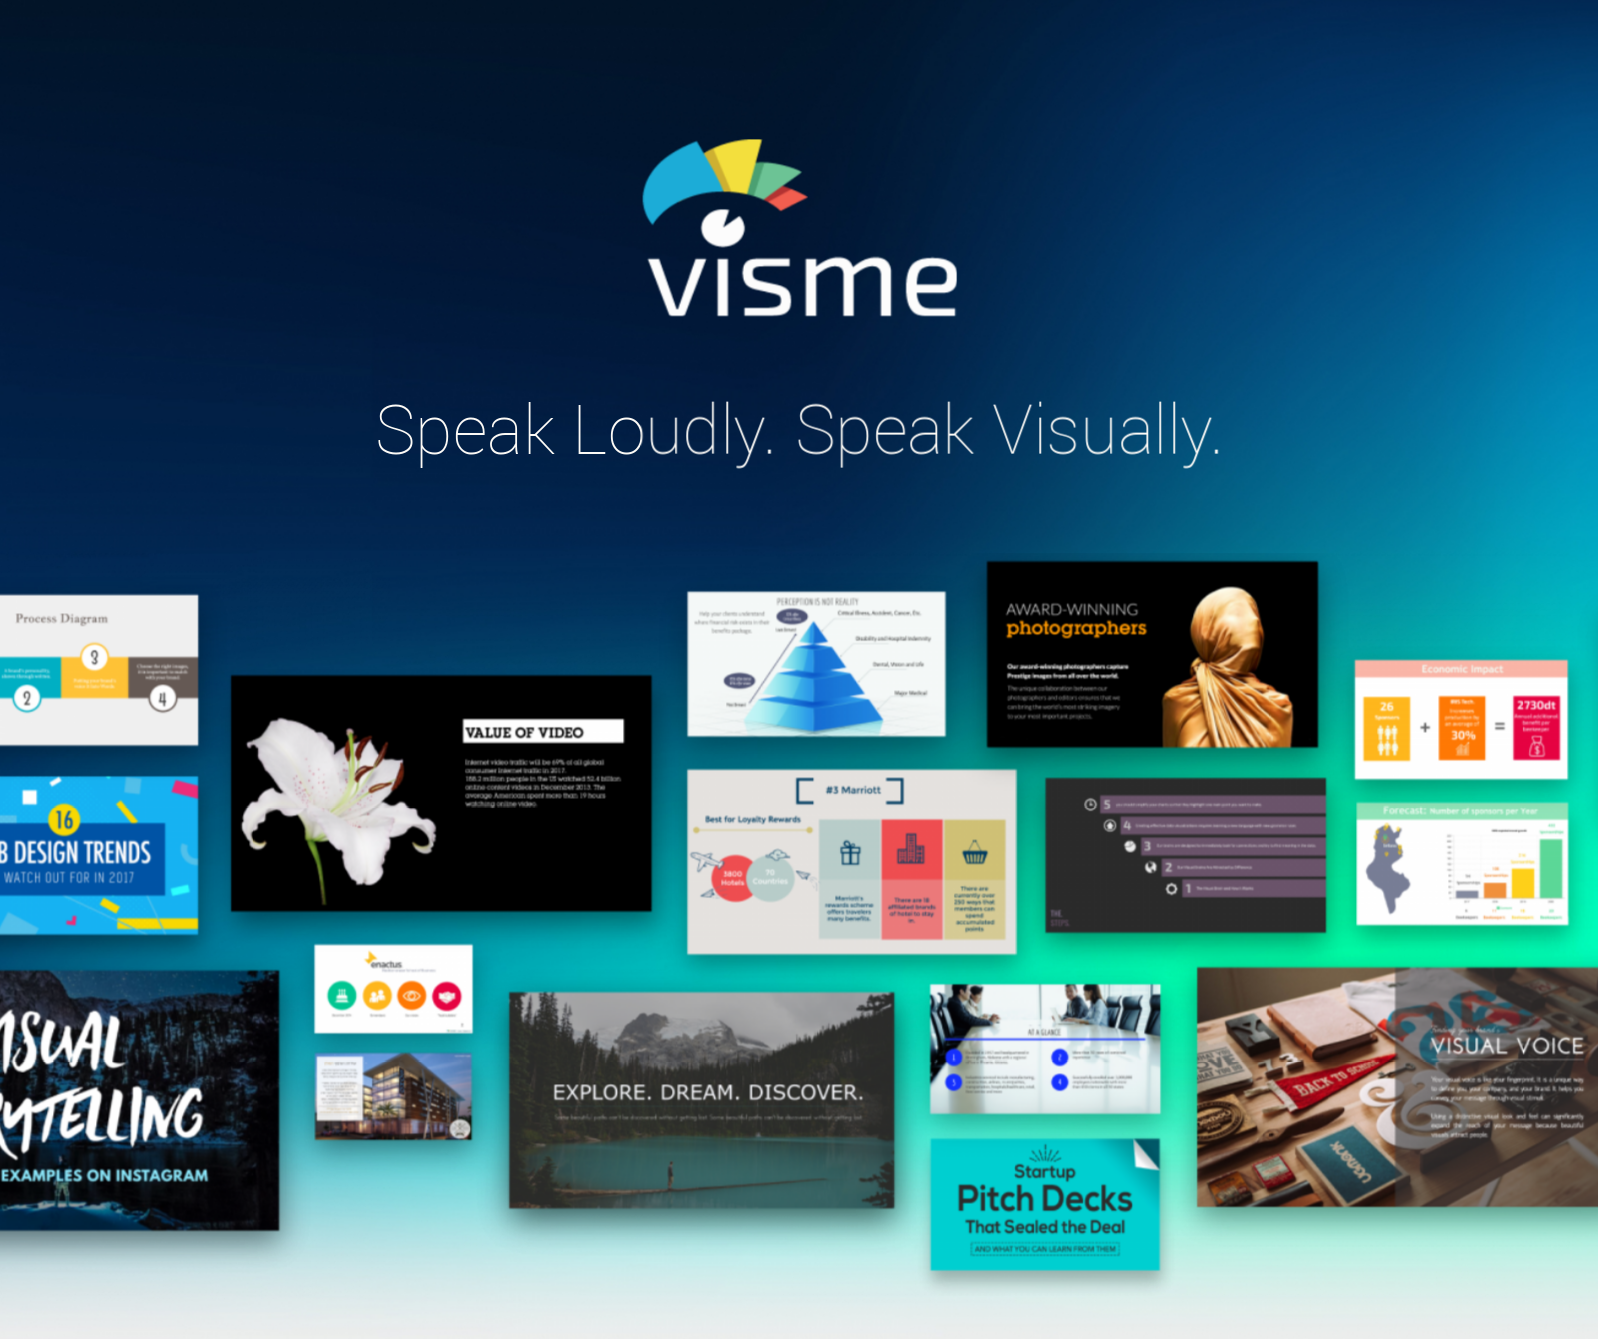 Get Visme License Key Now